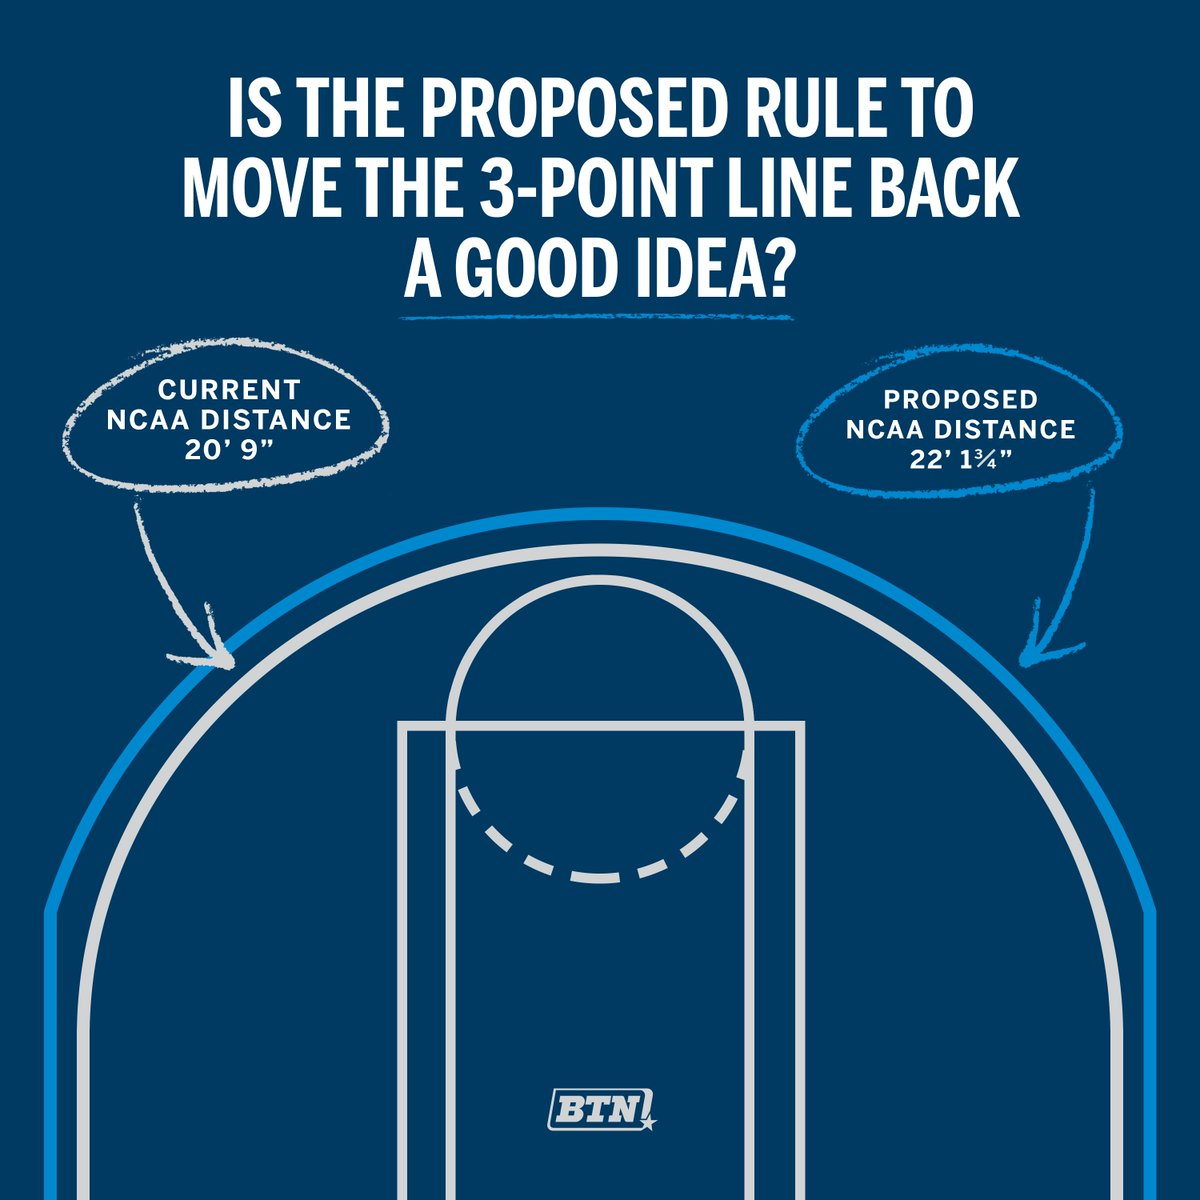 So the NCAA might move the college 3-point line back a bit... 📏🤔 Thoughts?